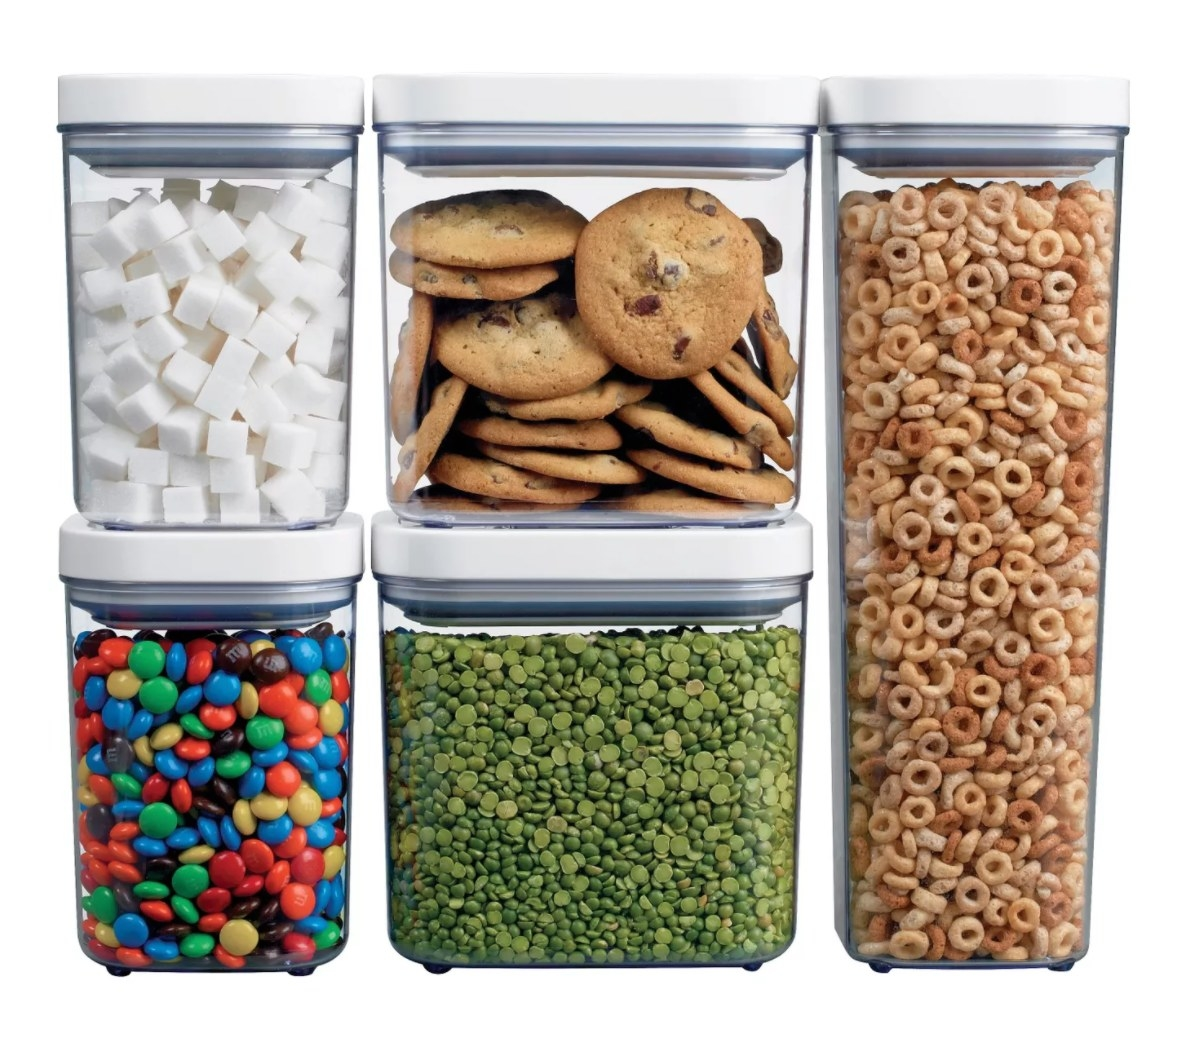 The clear pantry organizer set